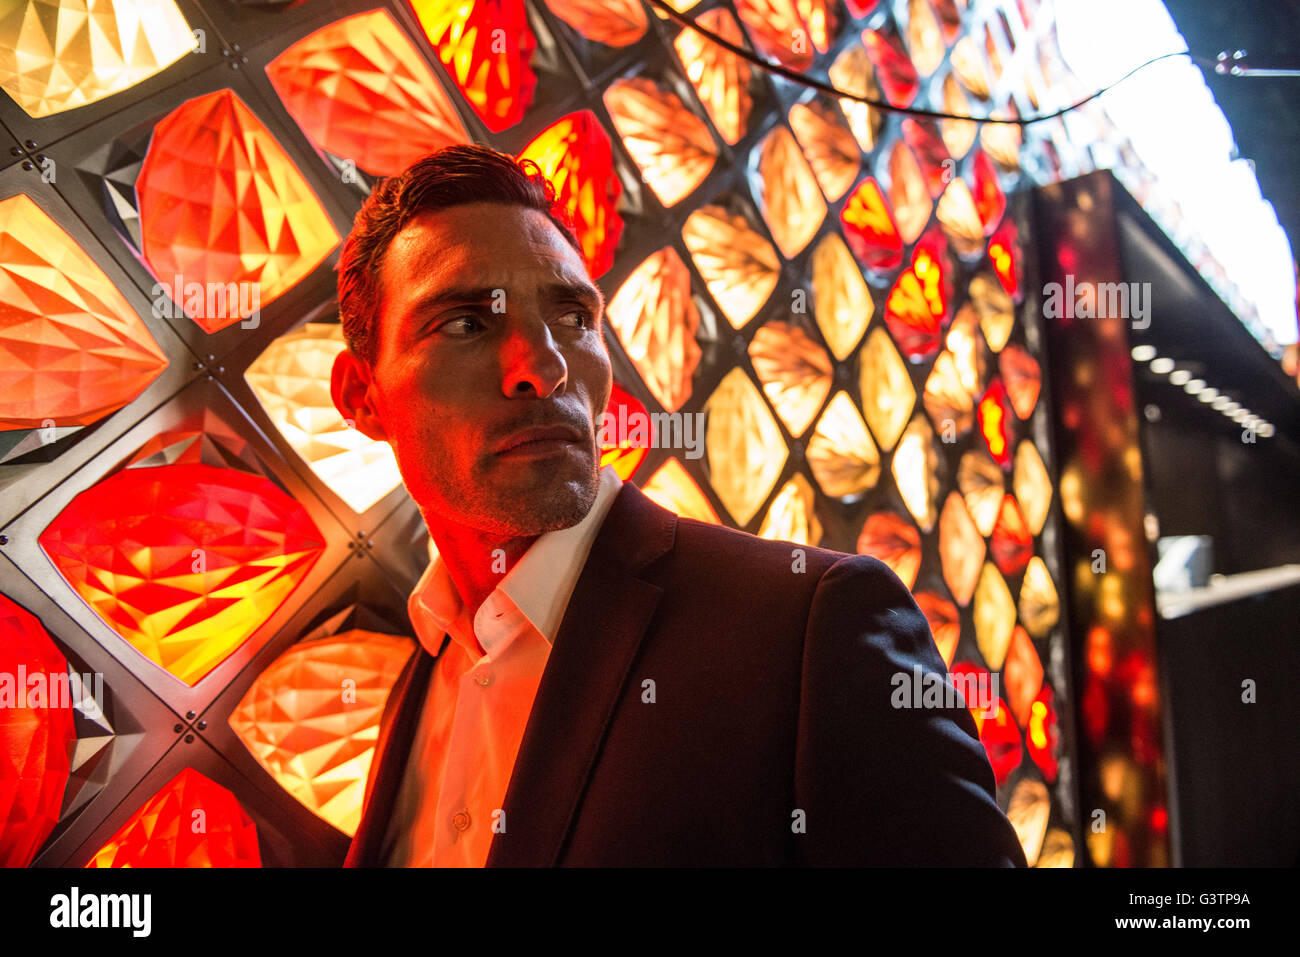 A smartly dressed man bathed in red light in front of a light fixture on the South Bank in London. - Stock Image